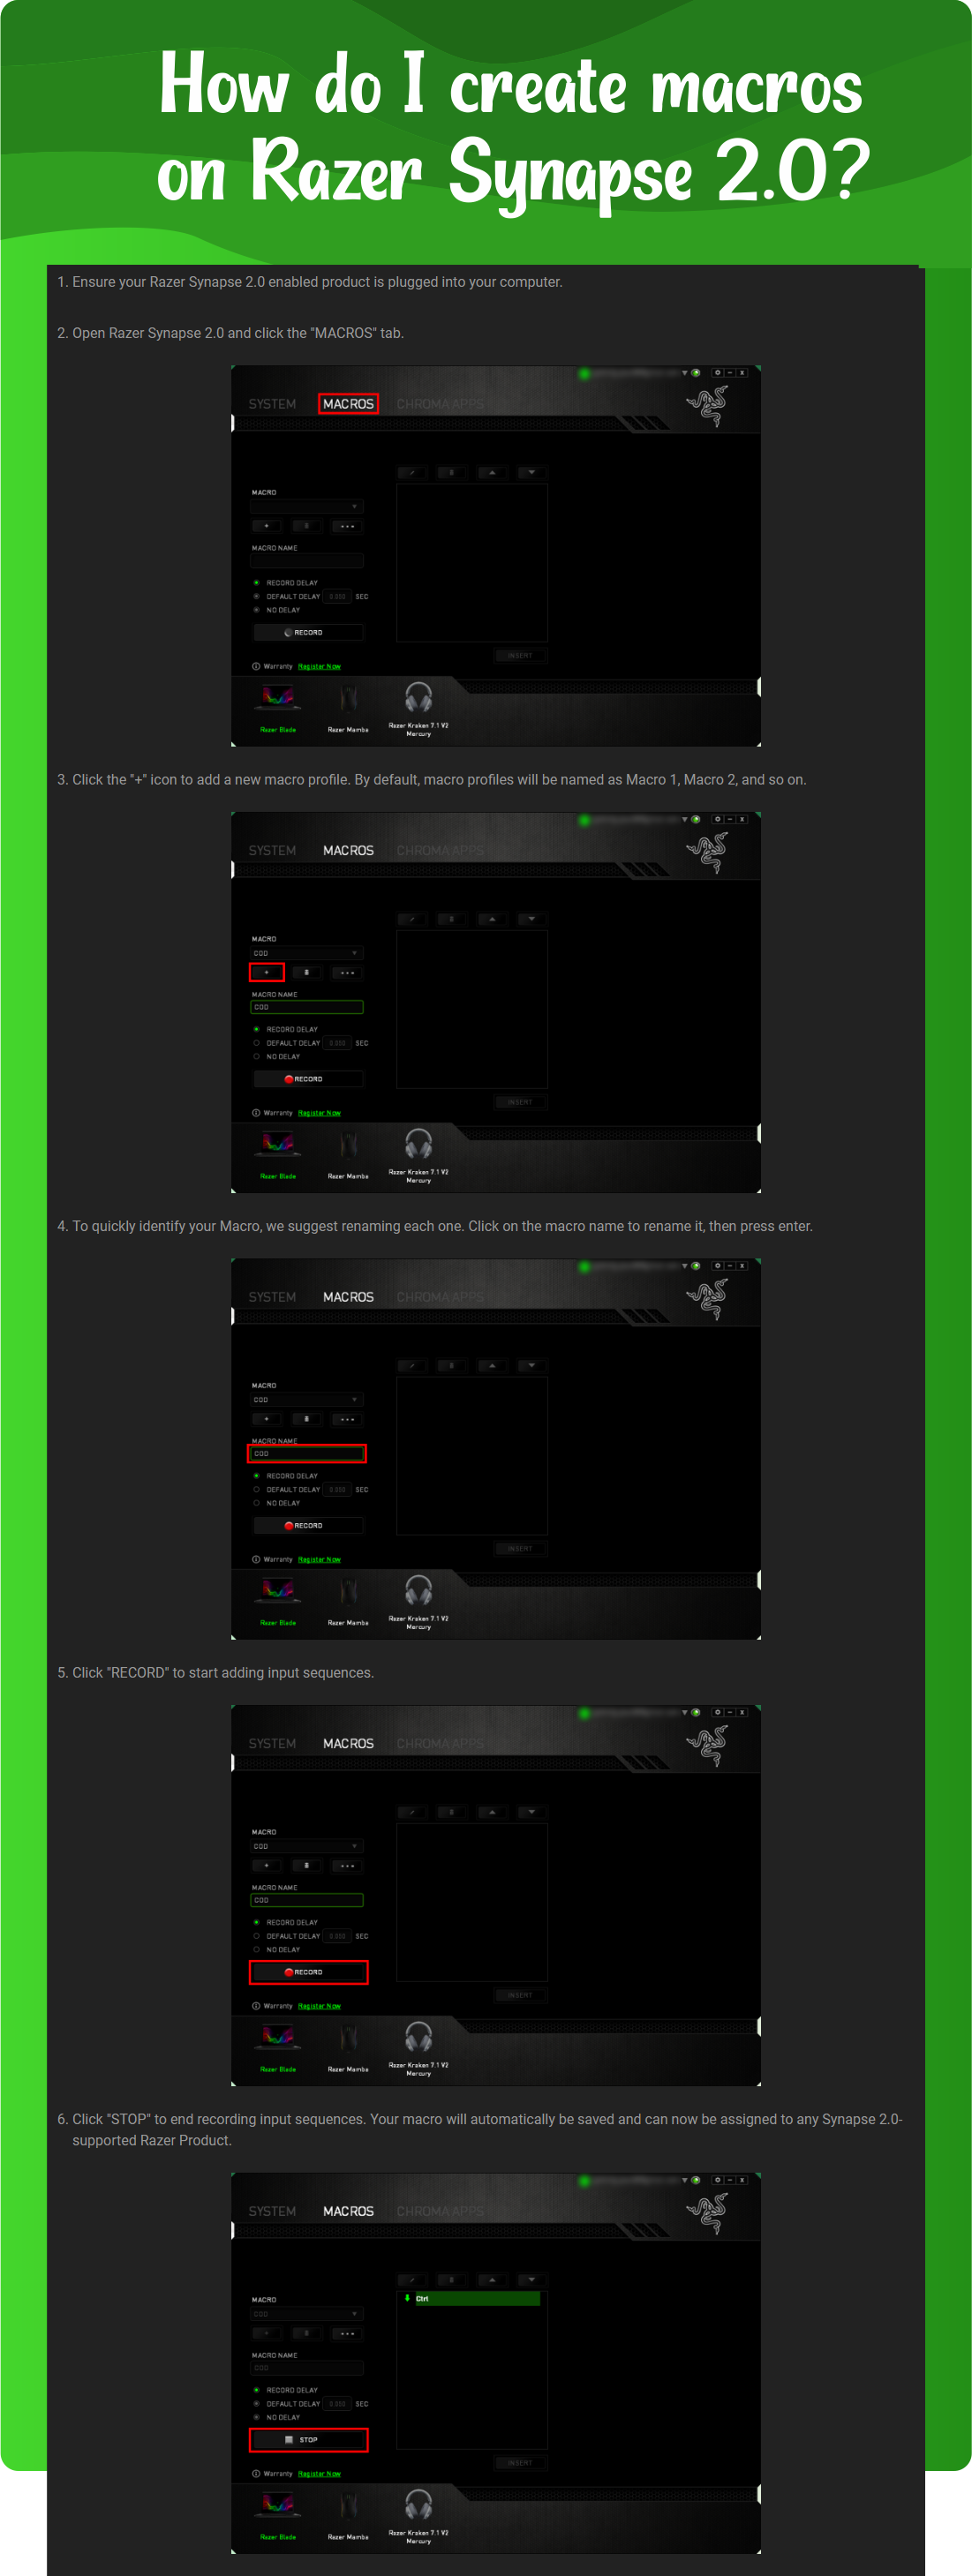 How do I create macros on Razer Synapse 2.0